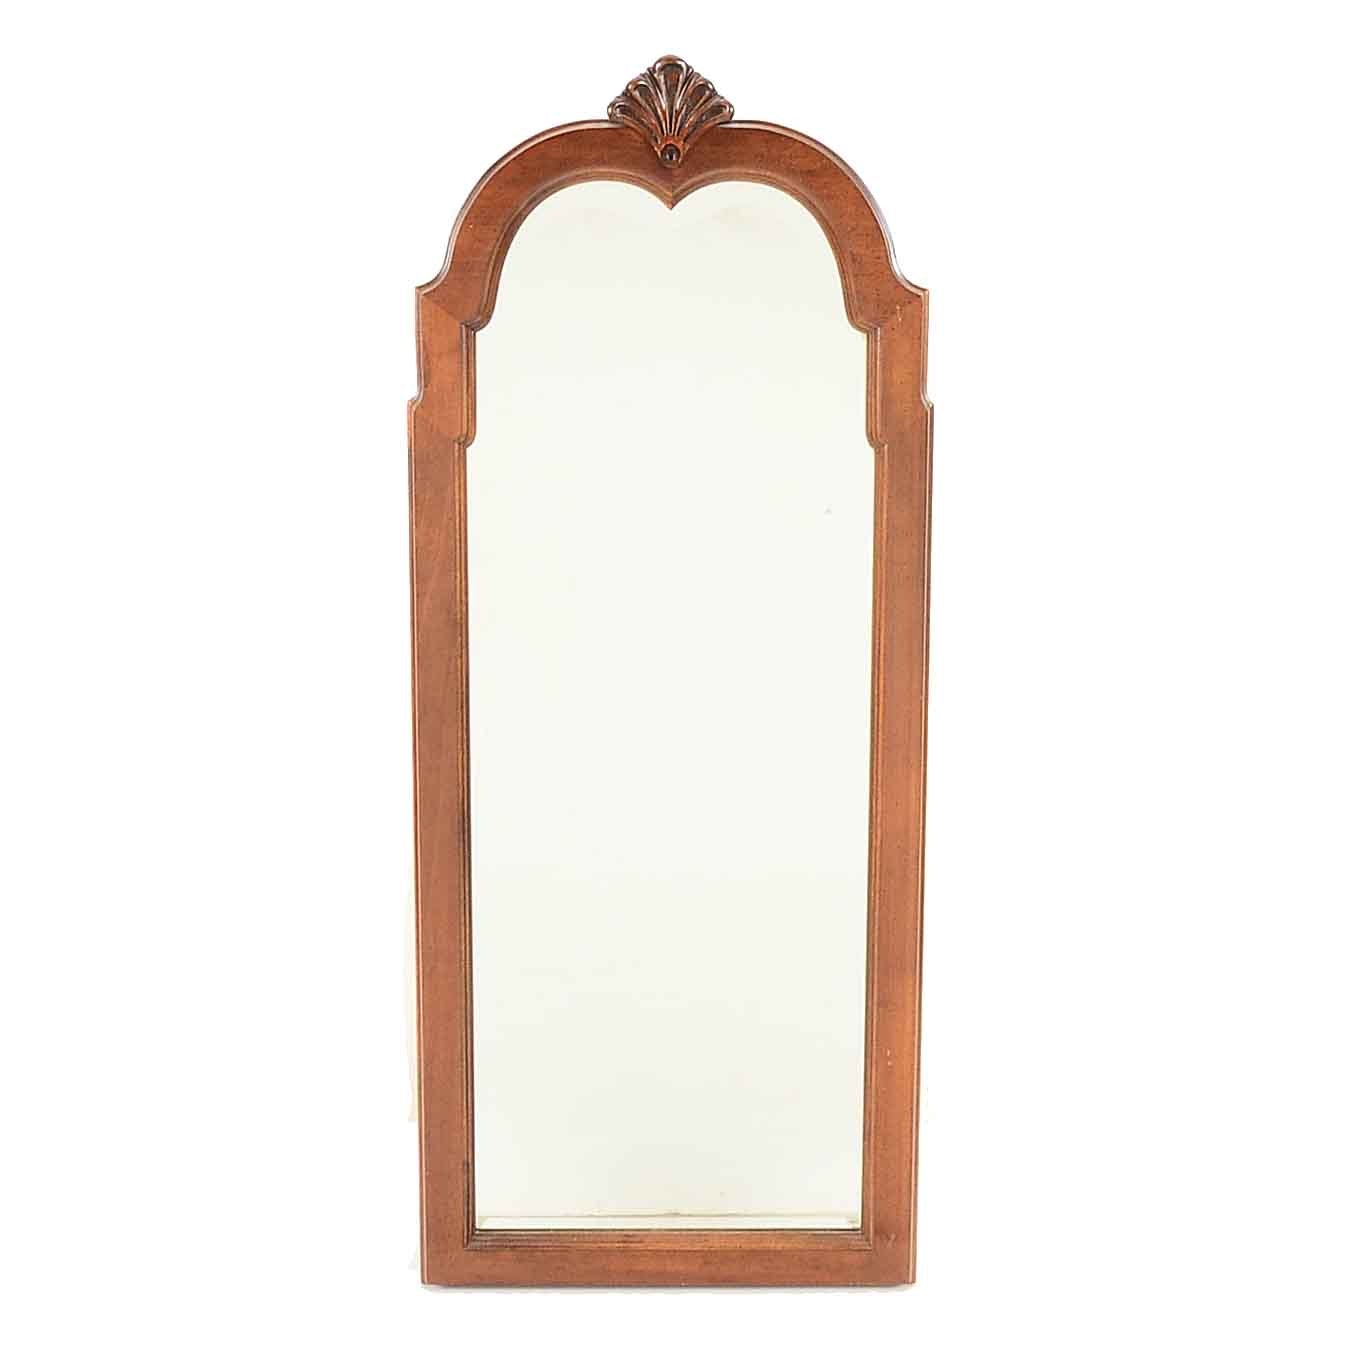 Ornate Rectangle Wall Mirror